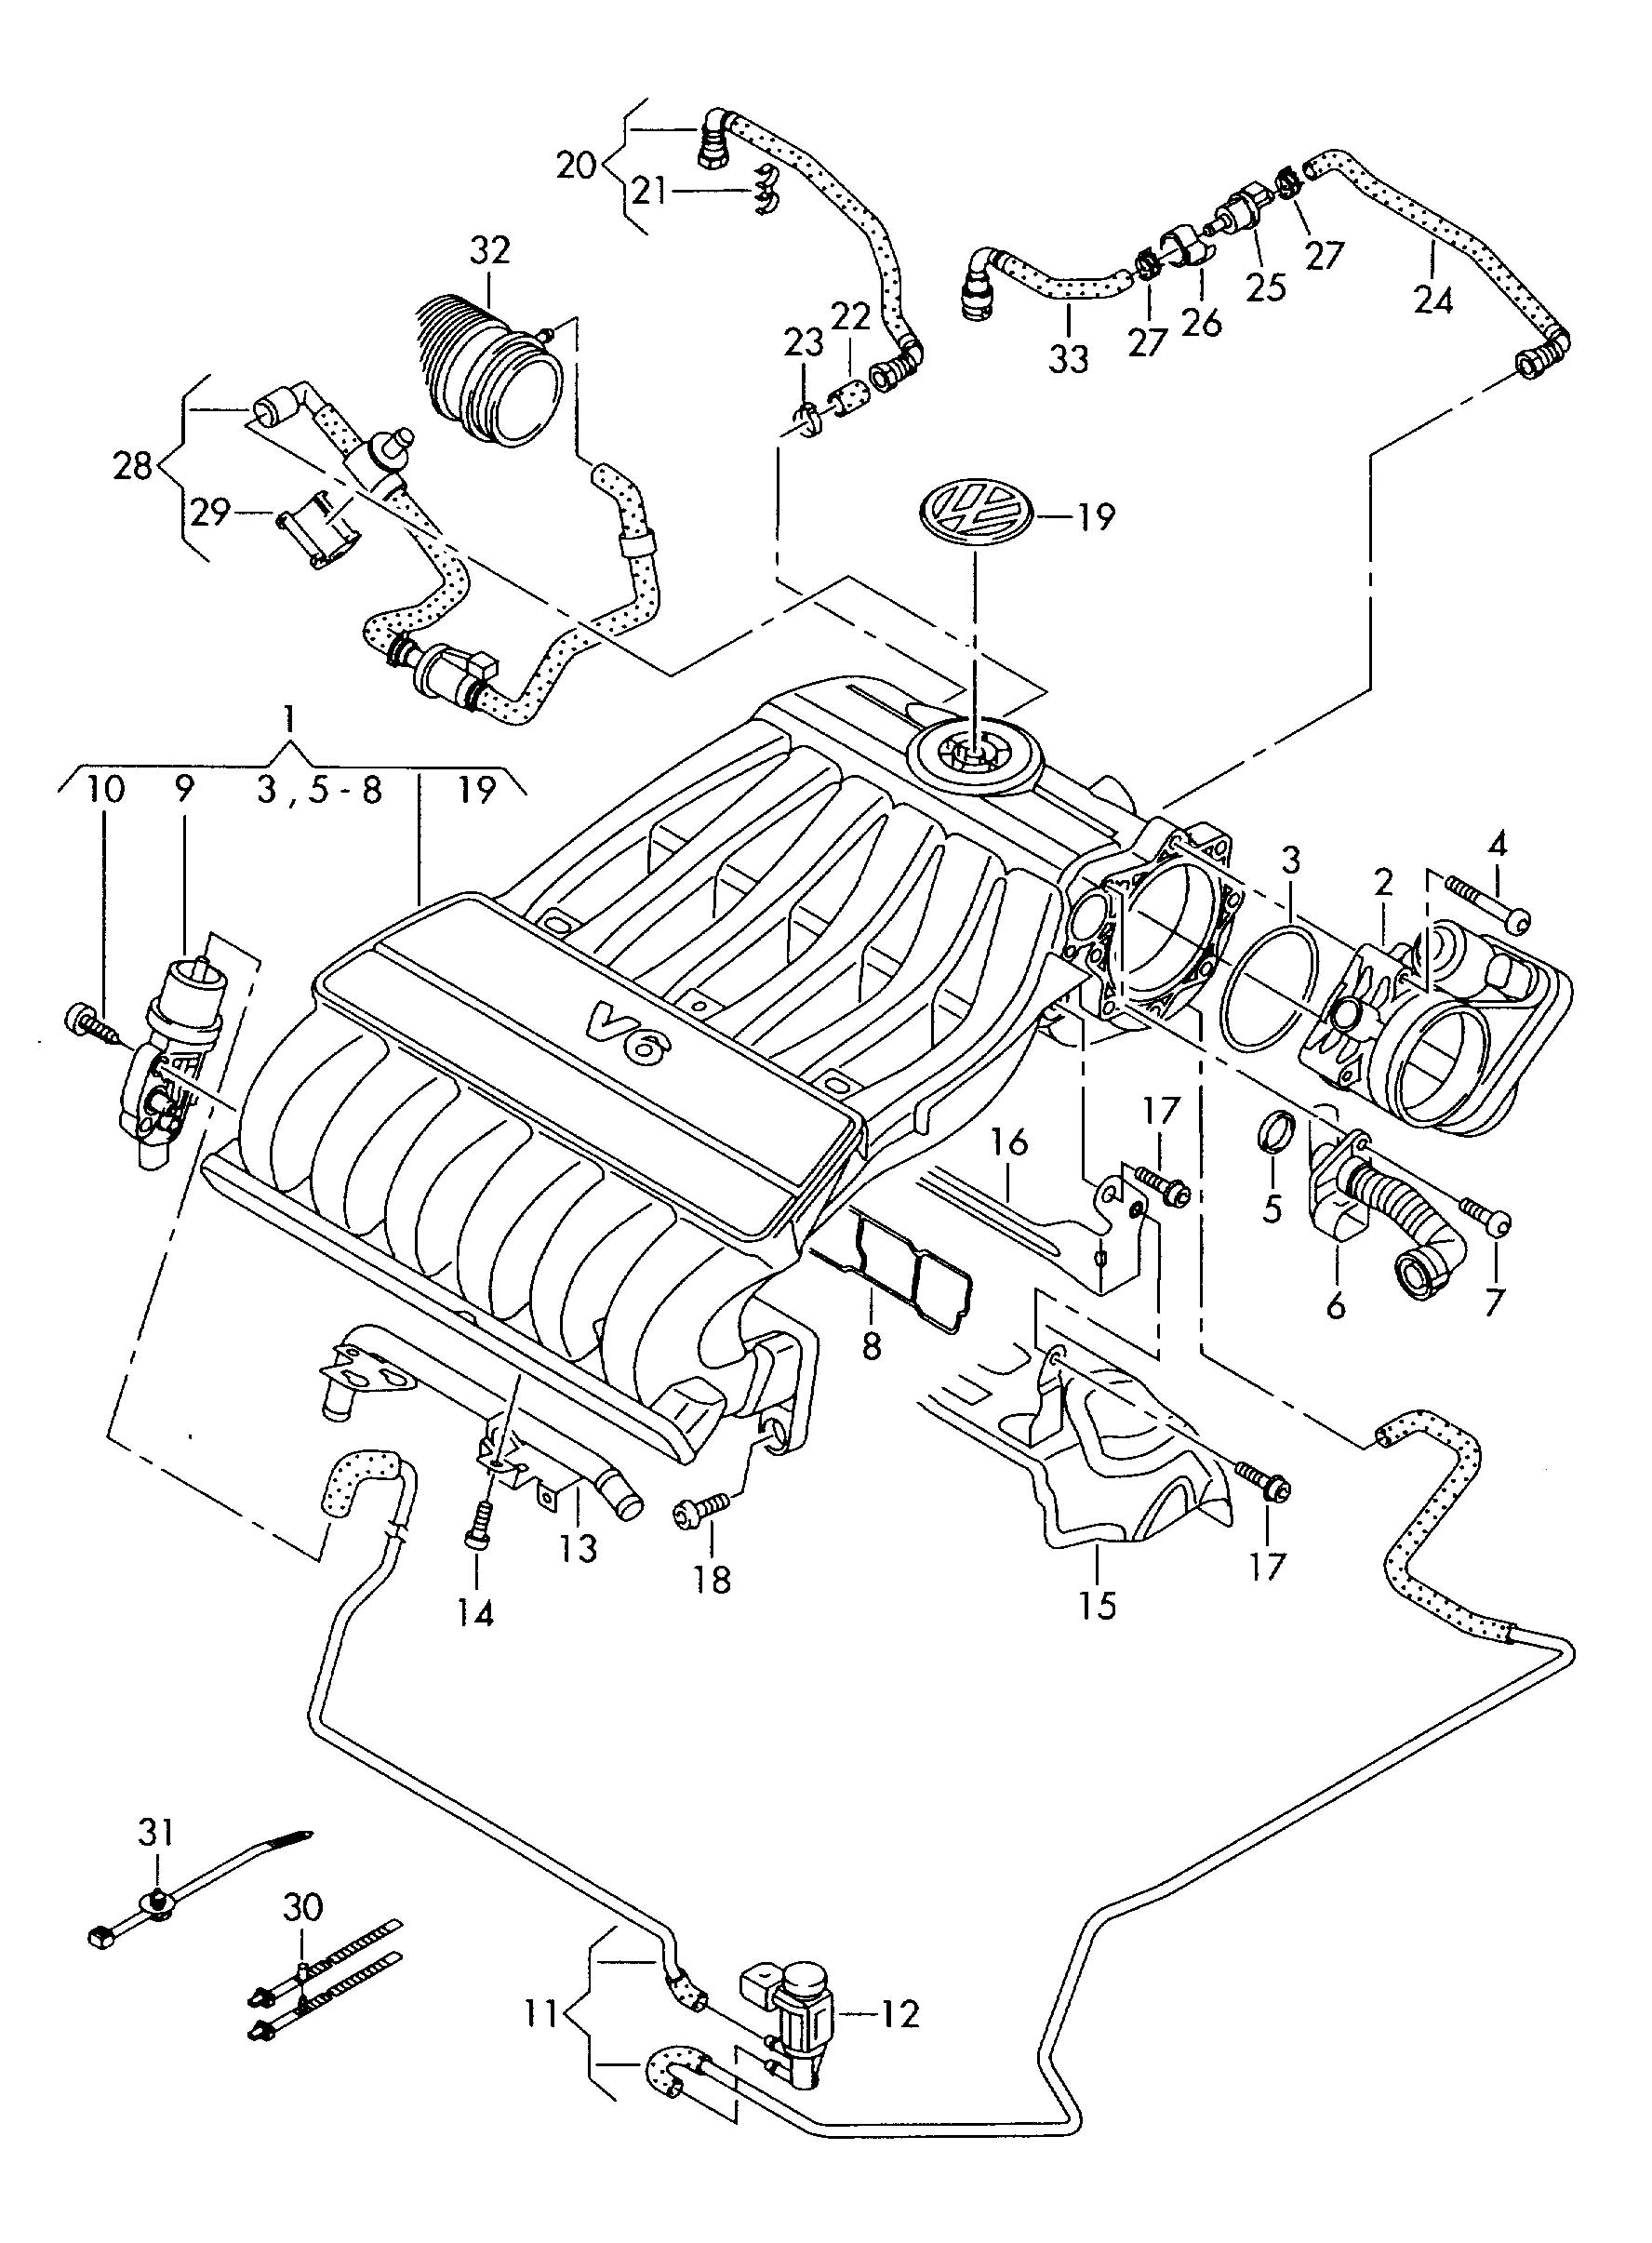 Ford Probe Parts Diagram Html